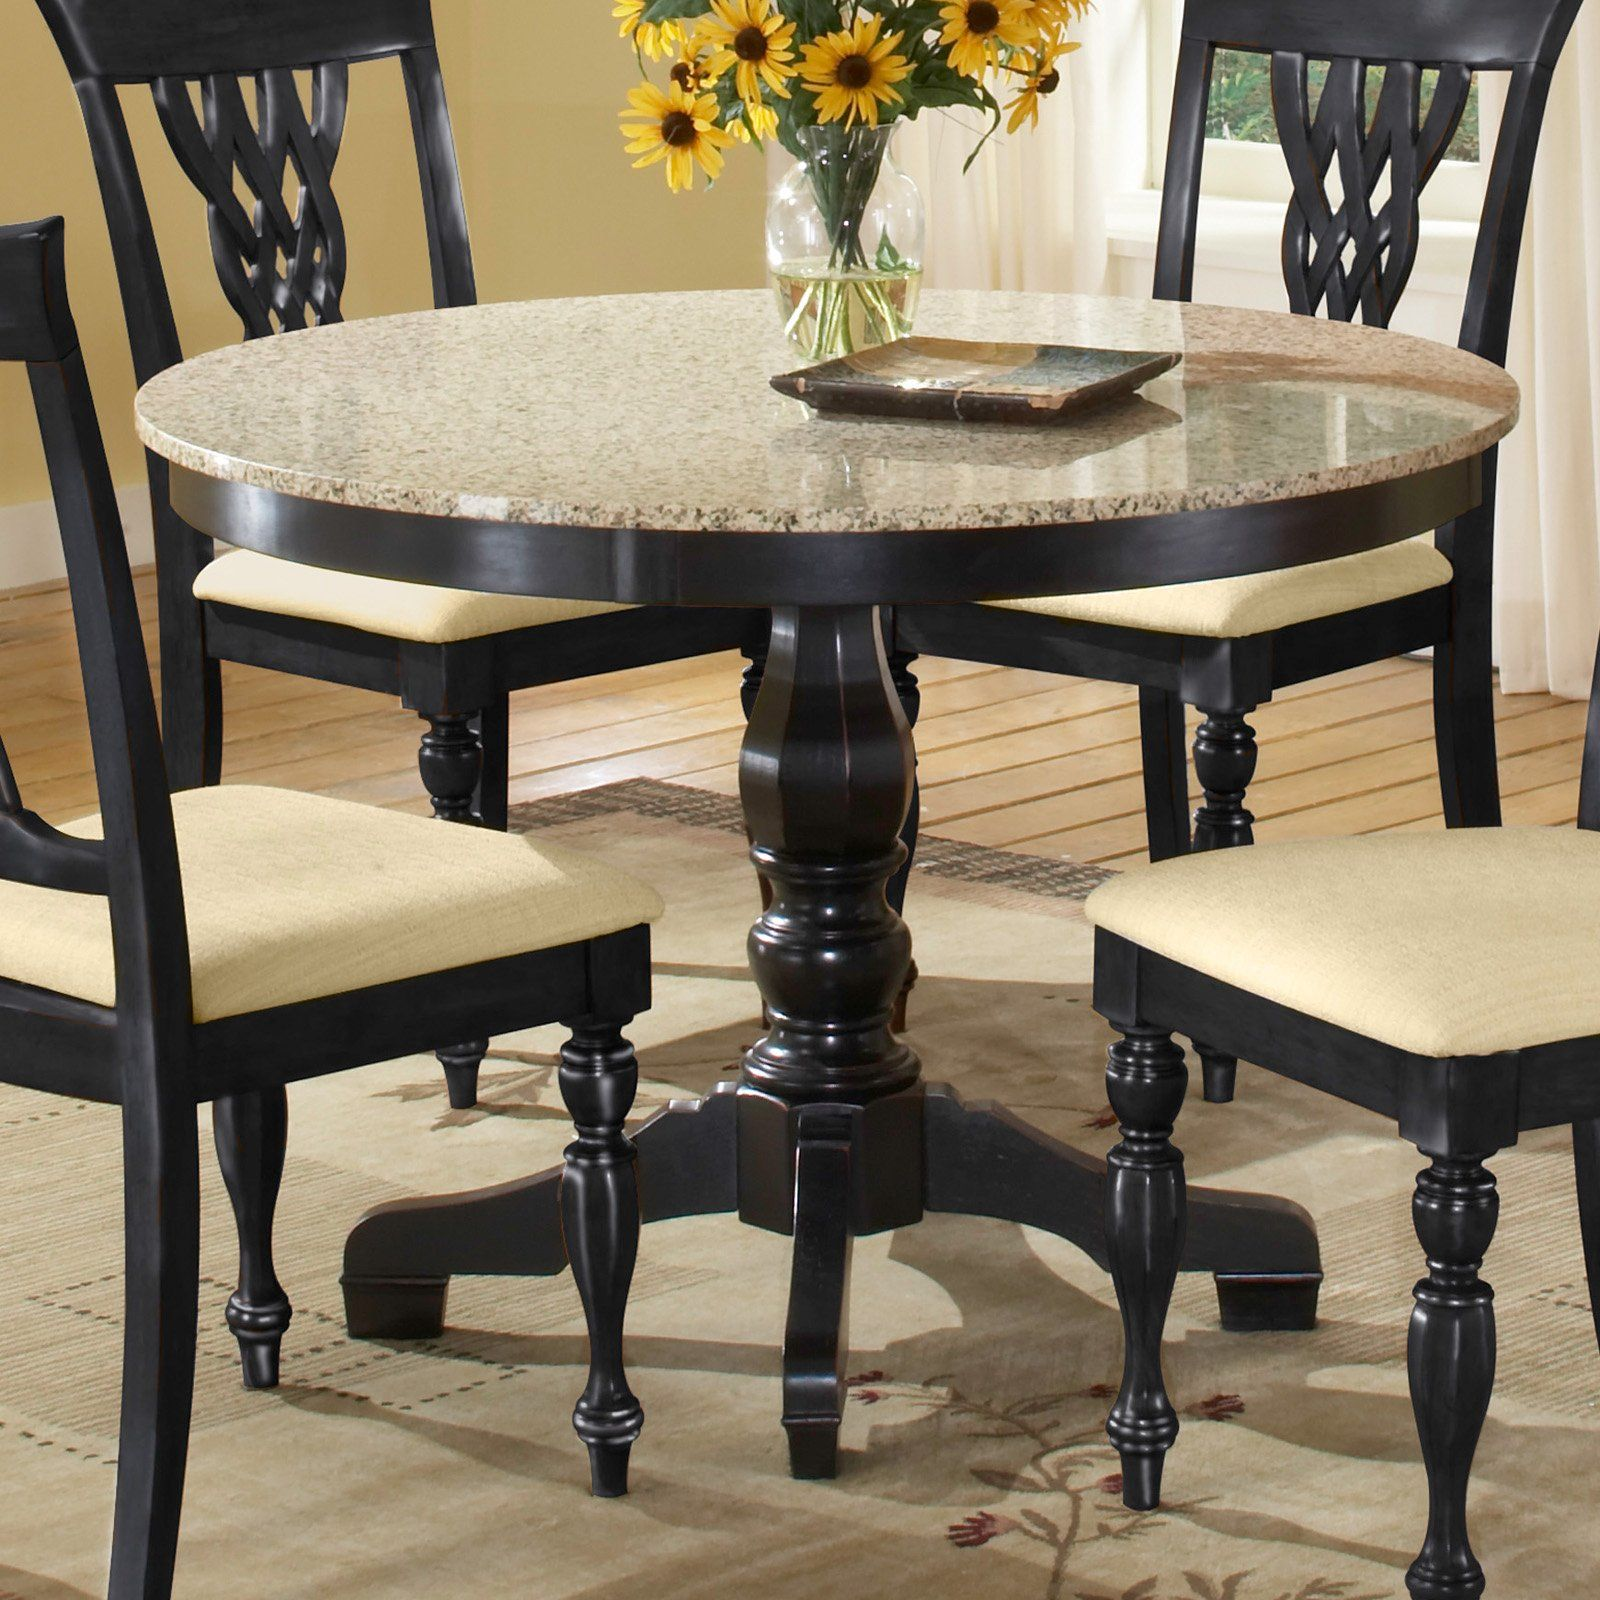 Round Marble Kitchen Table Sets 17 Best Images About Tables On Pinterest Counter Height Dining